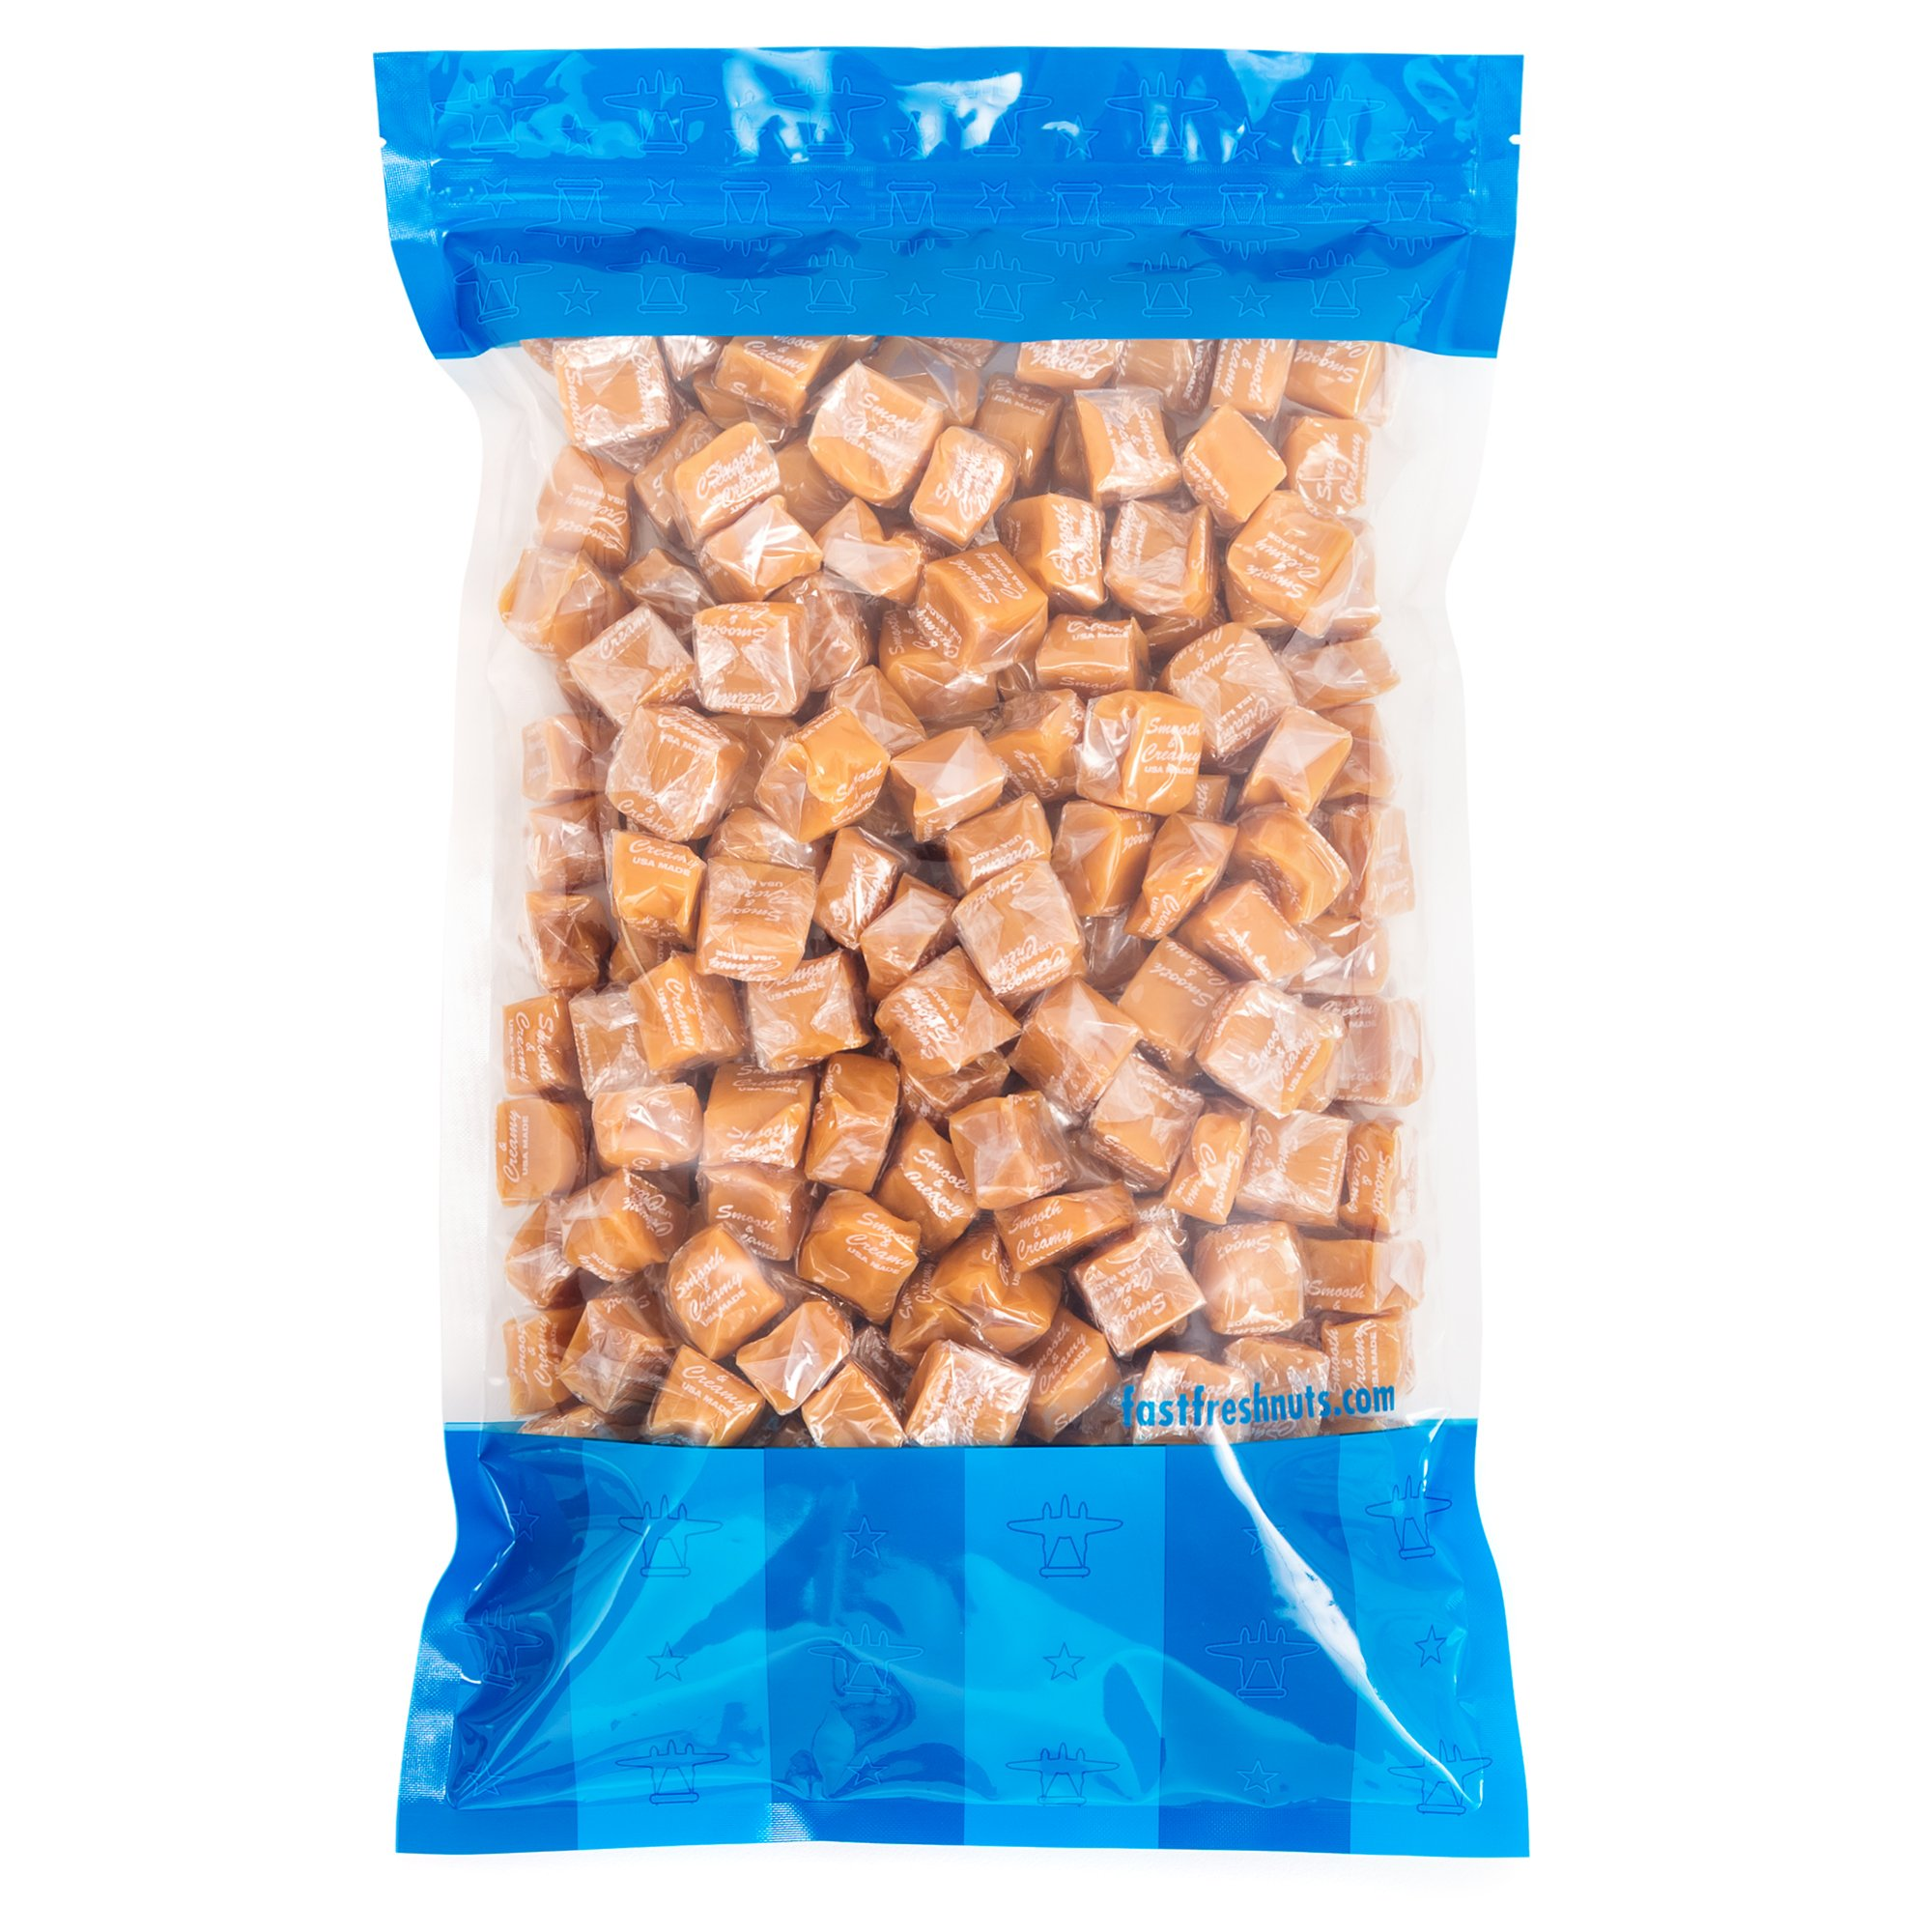 Bulk Smooth and Creamy Caramel Squares - 5 lbs in a Resealable Bomber Bag - Great for Office Candy Bowls - Baking - Wholesale - Parties - Holiday Candy !! by Fast Fresh Nuts